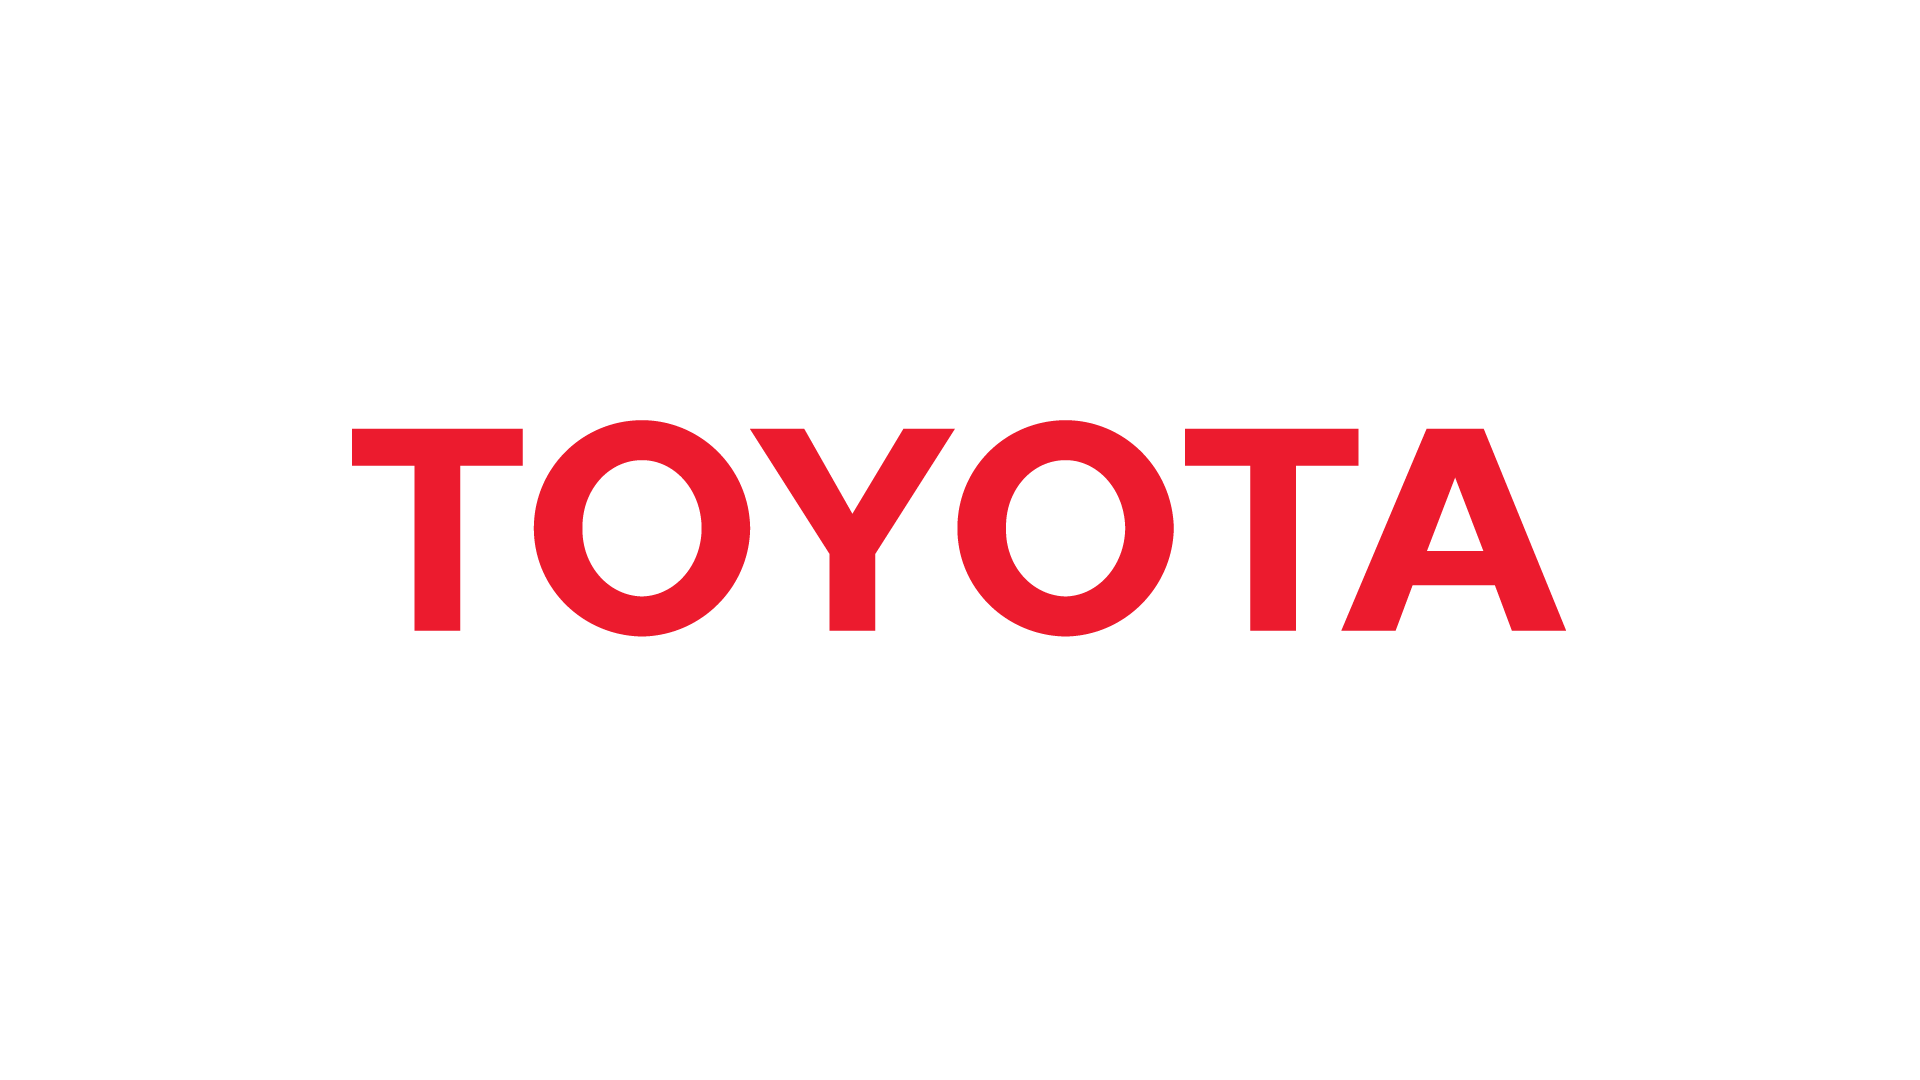 Toyota Corporate Logo